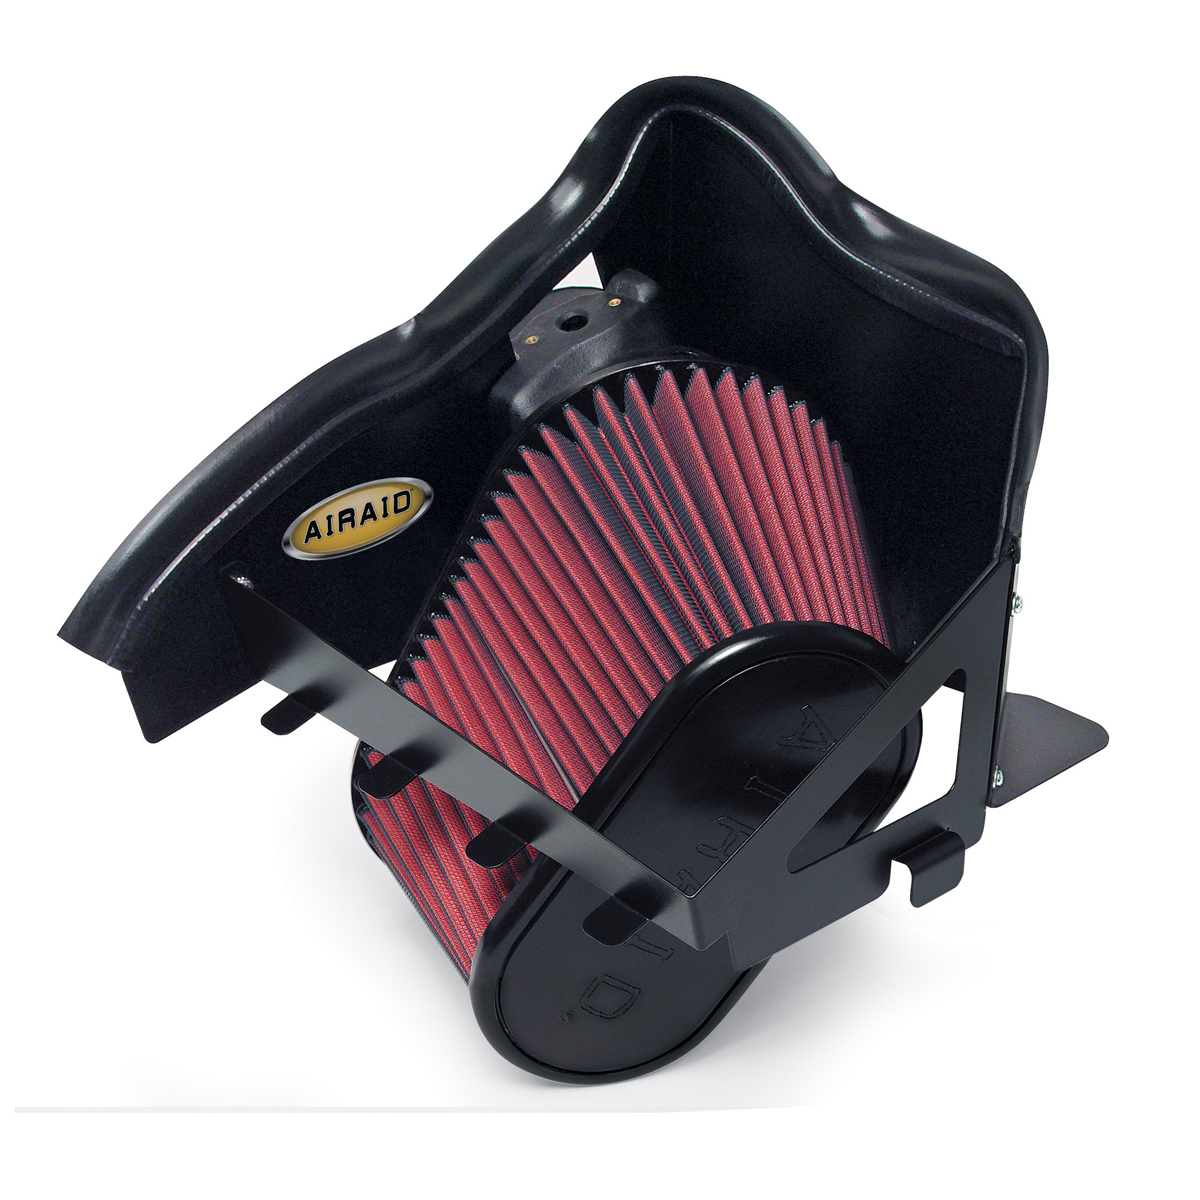 Airaid QuickFit Intake # 300-155 (Drop ships from supplier)